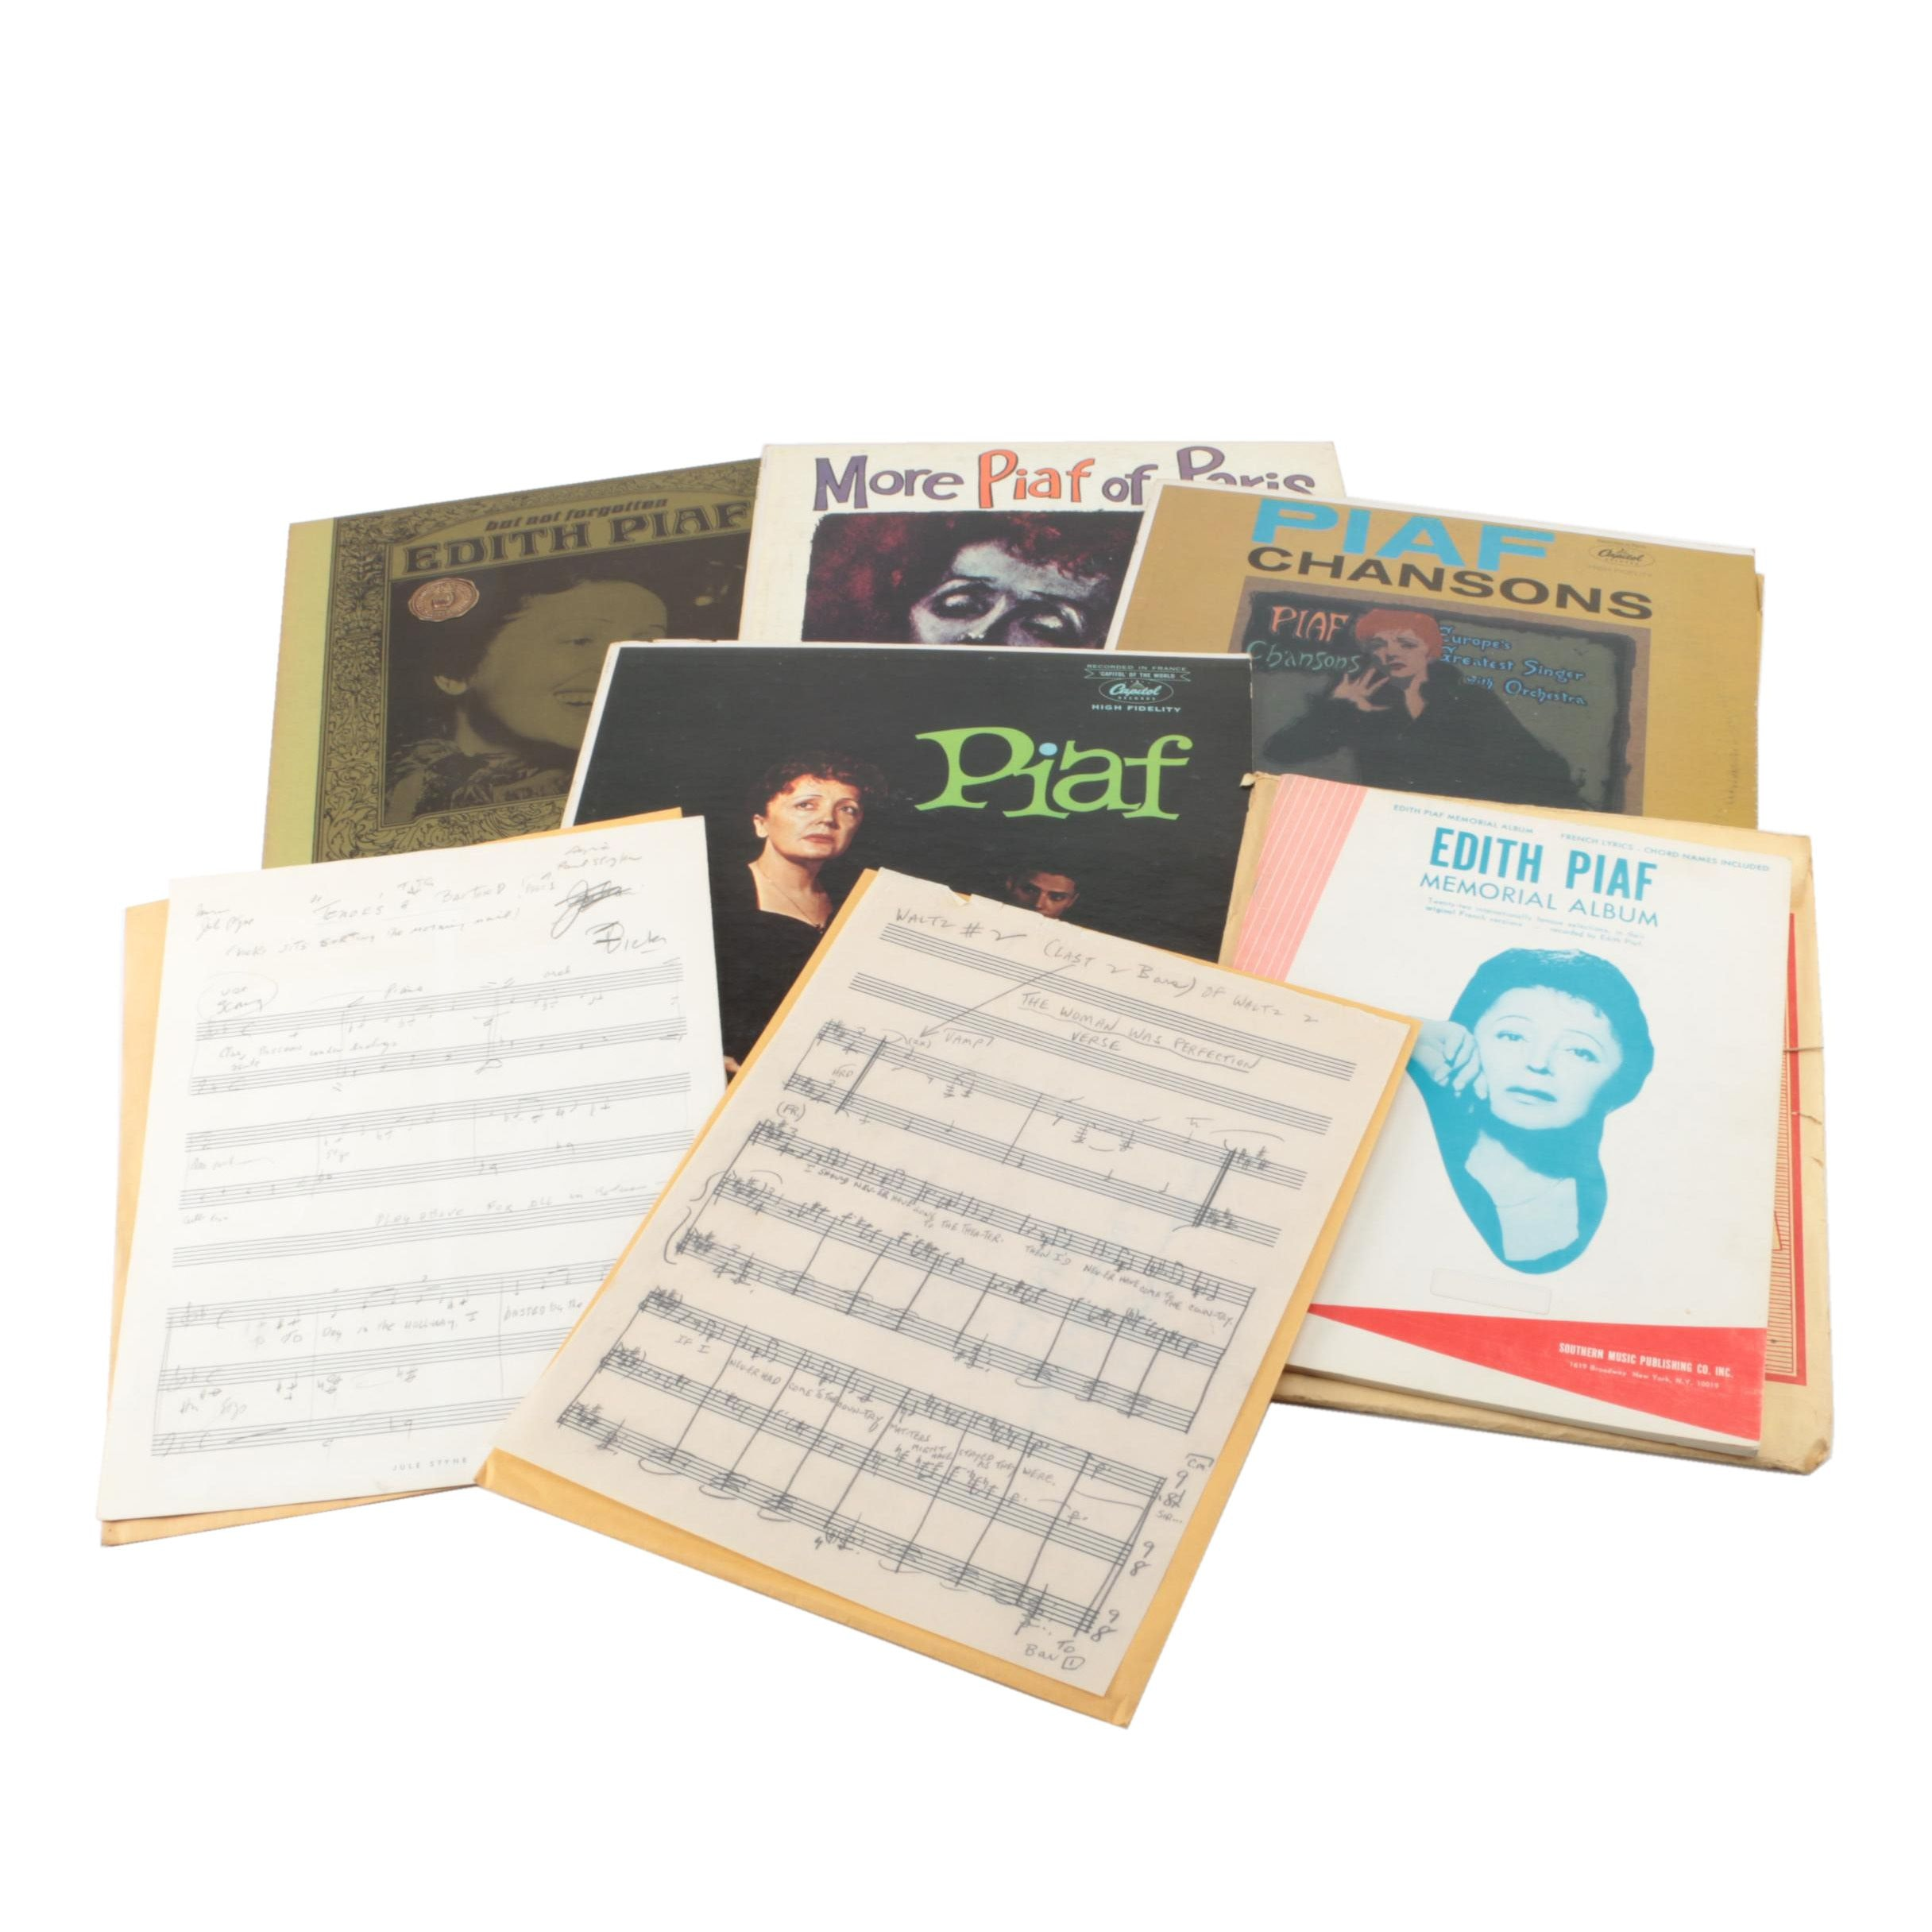 Édith Piaf LPs and Sheet Music